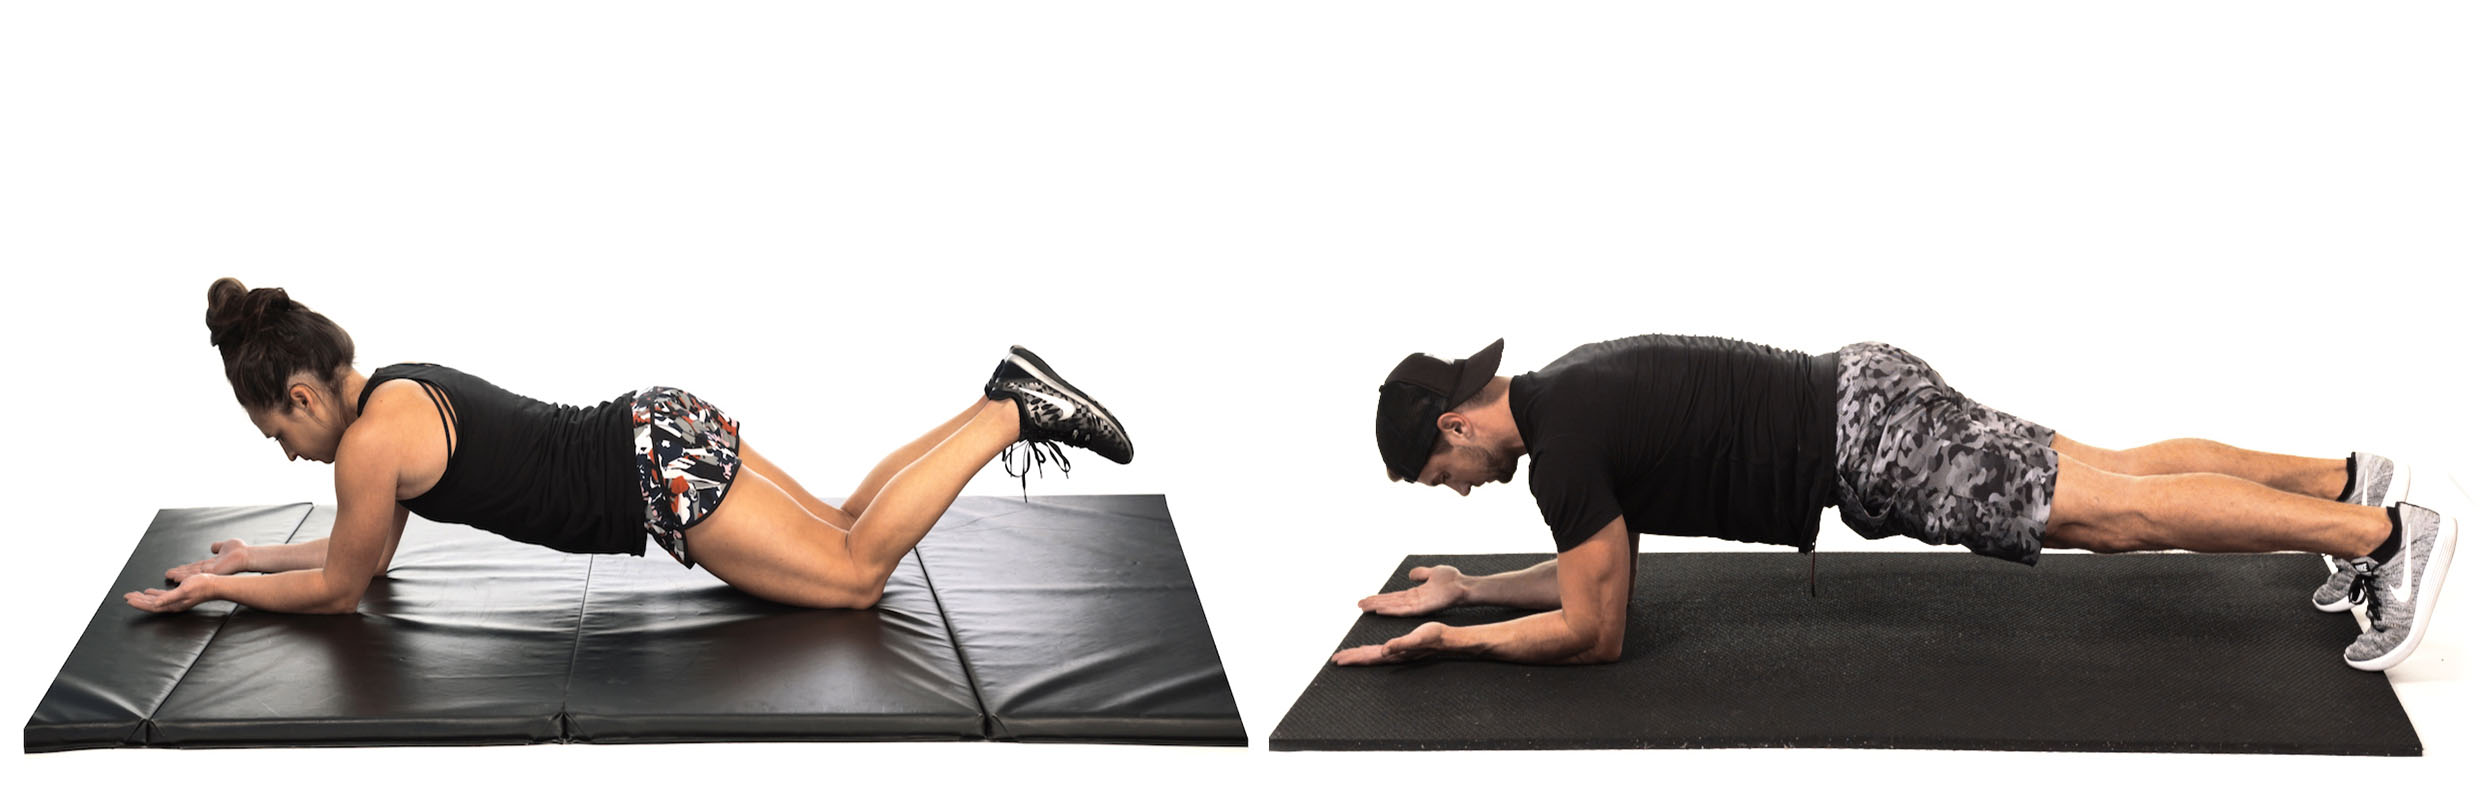 Whole Body Fitness plank